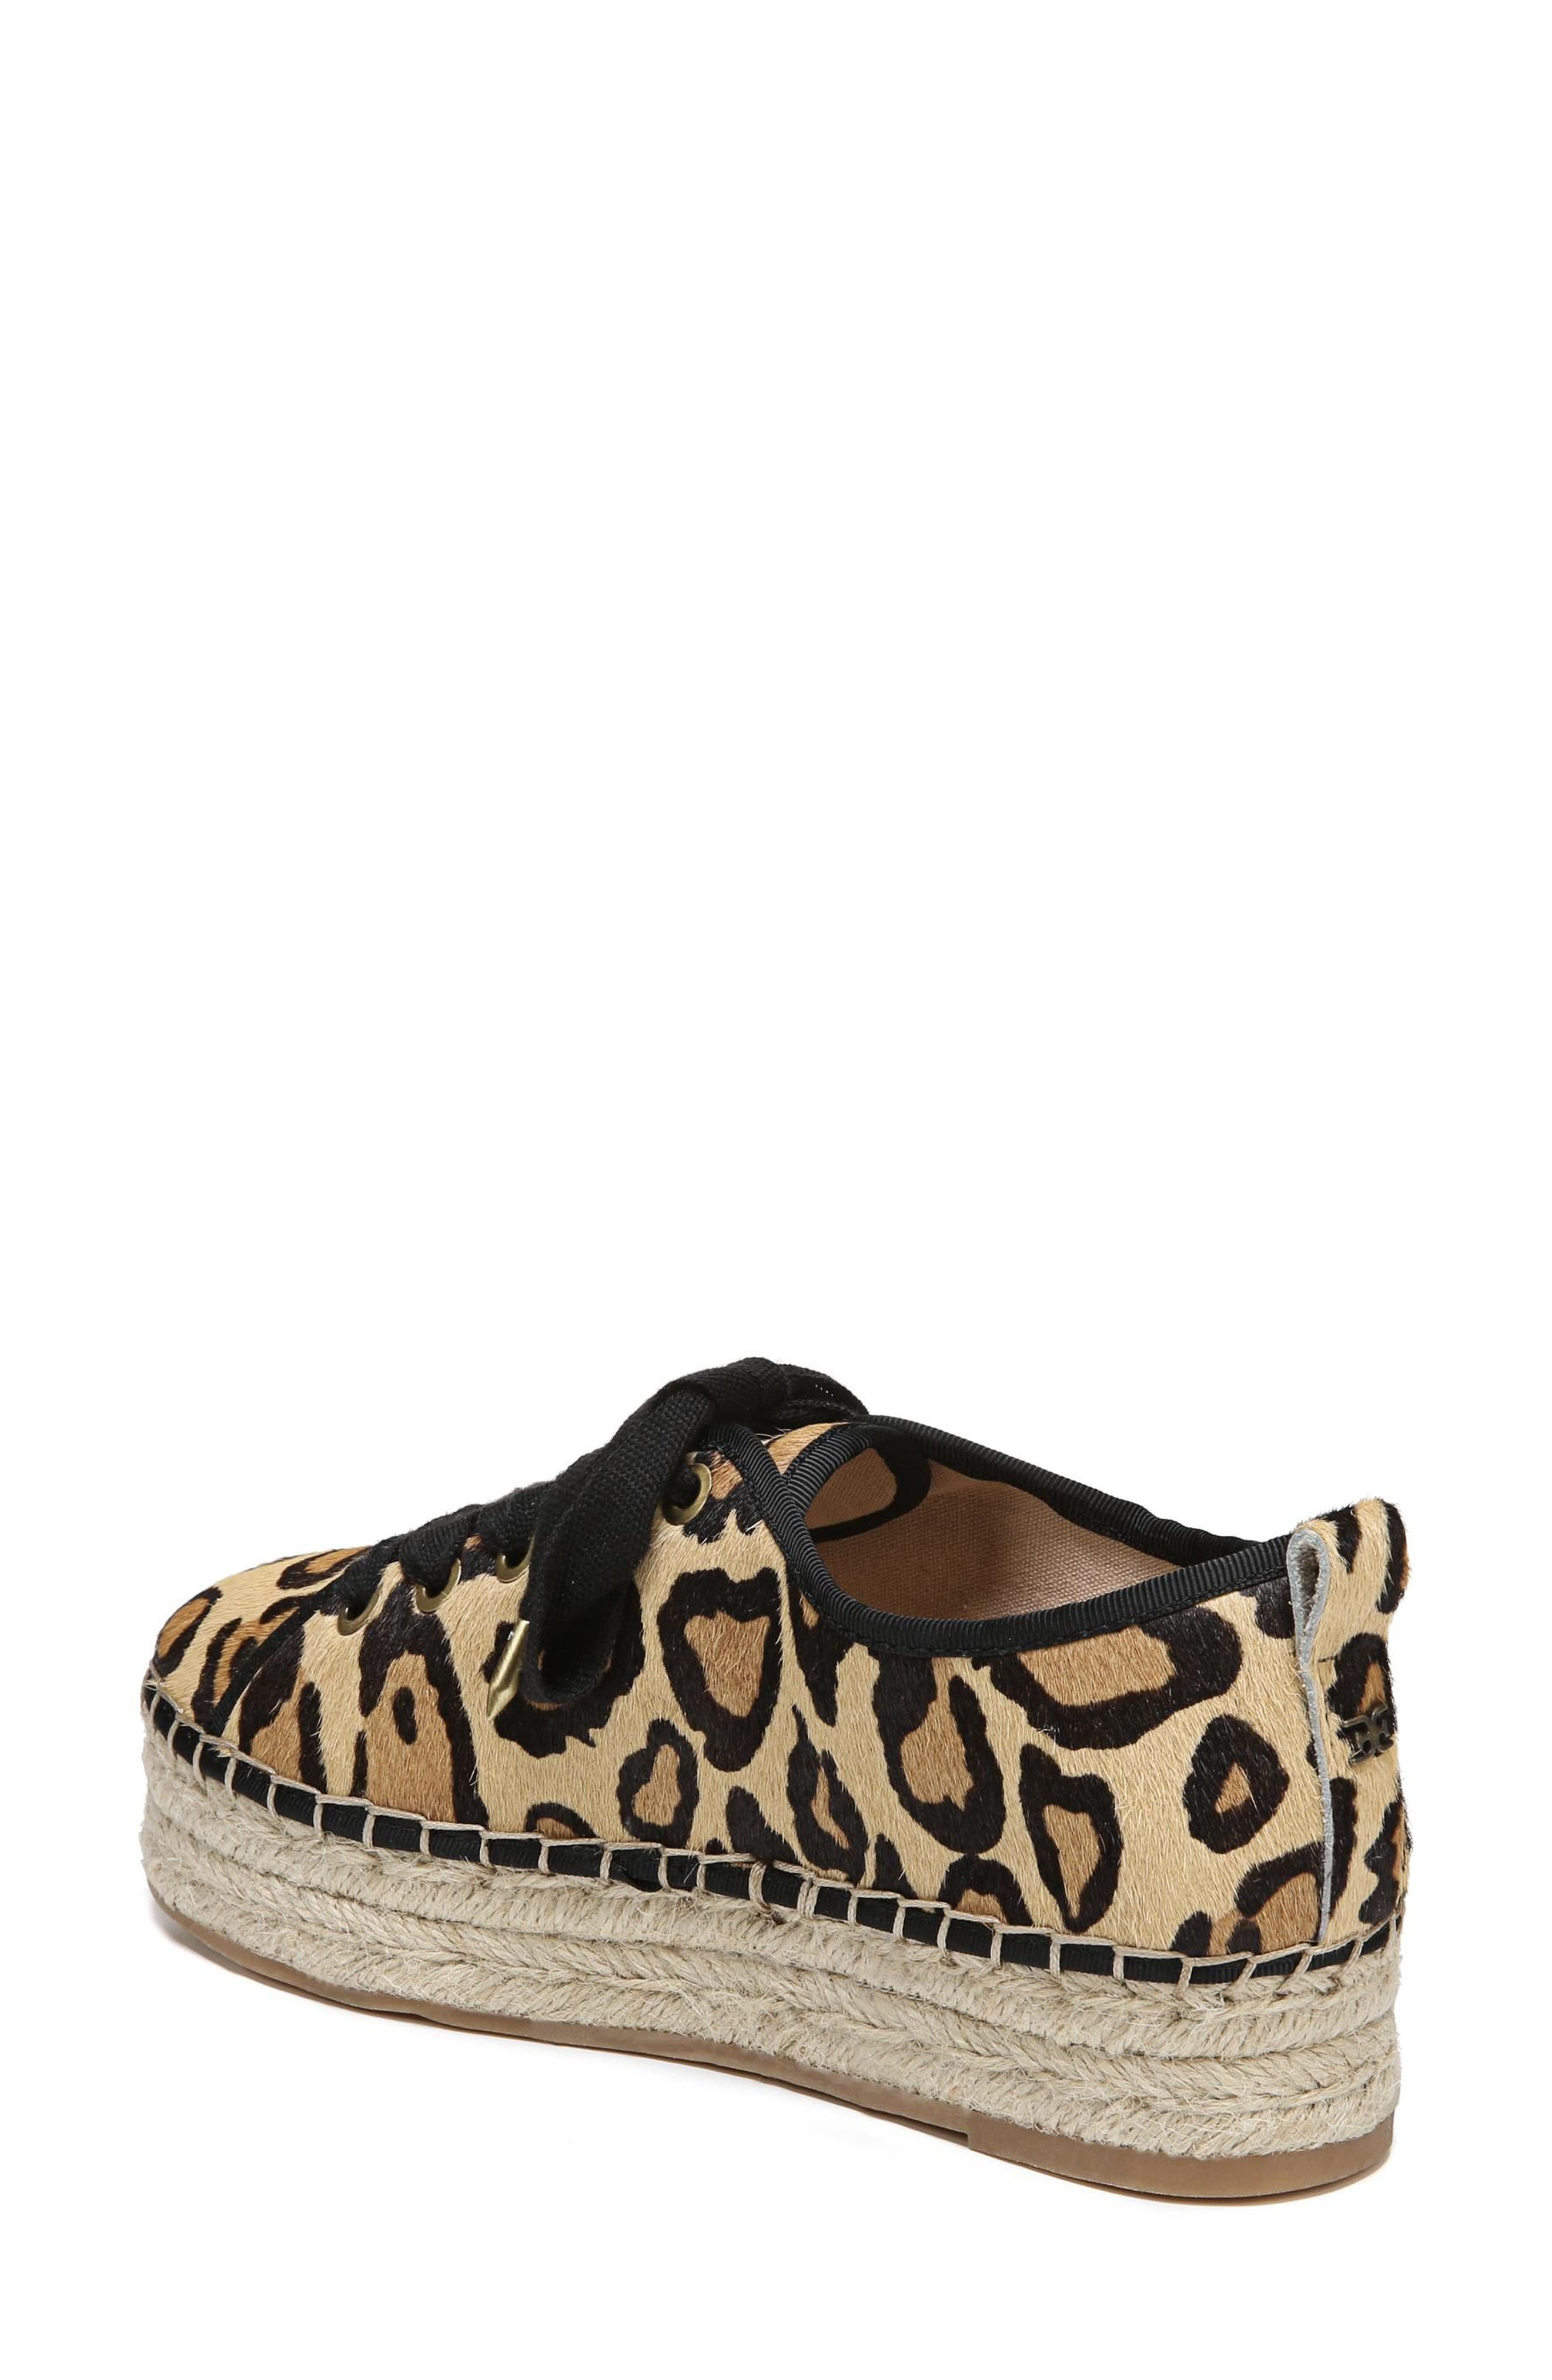 Celina Genuine Calf Hair Espadrille Flat,                             Alternate thumbnail 2, color,                             200